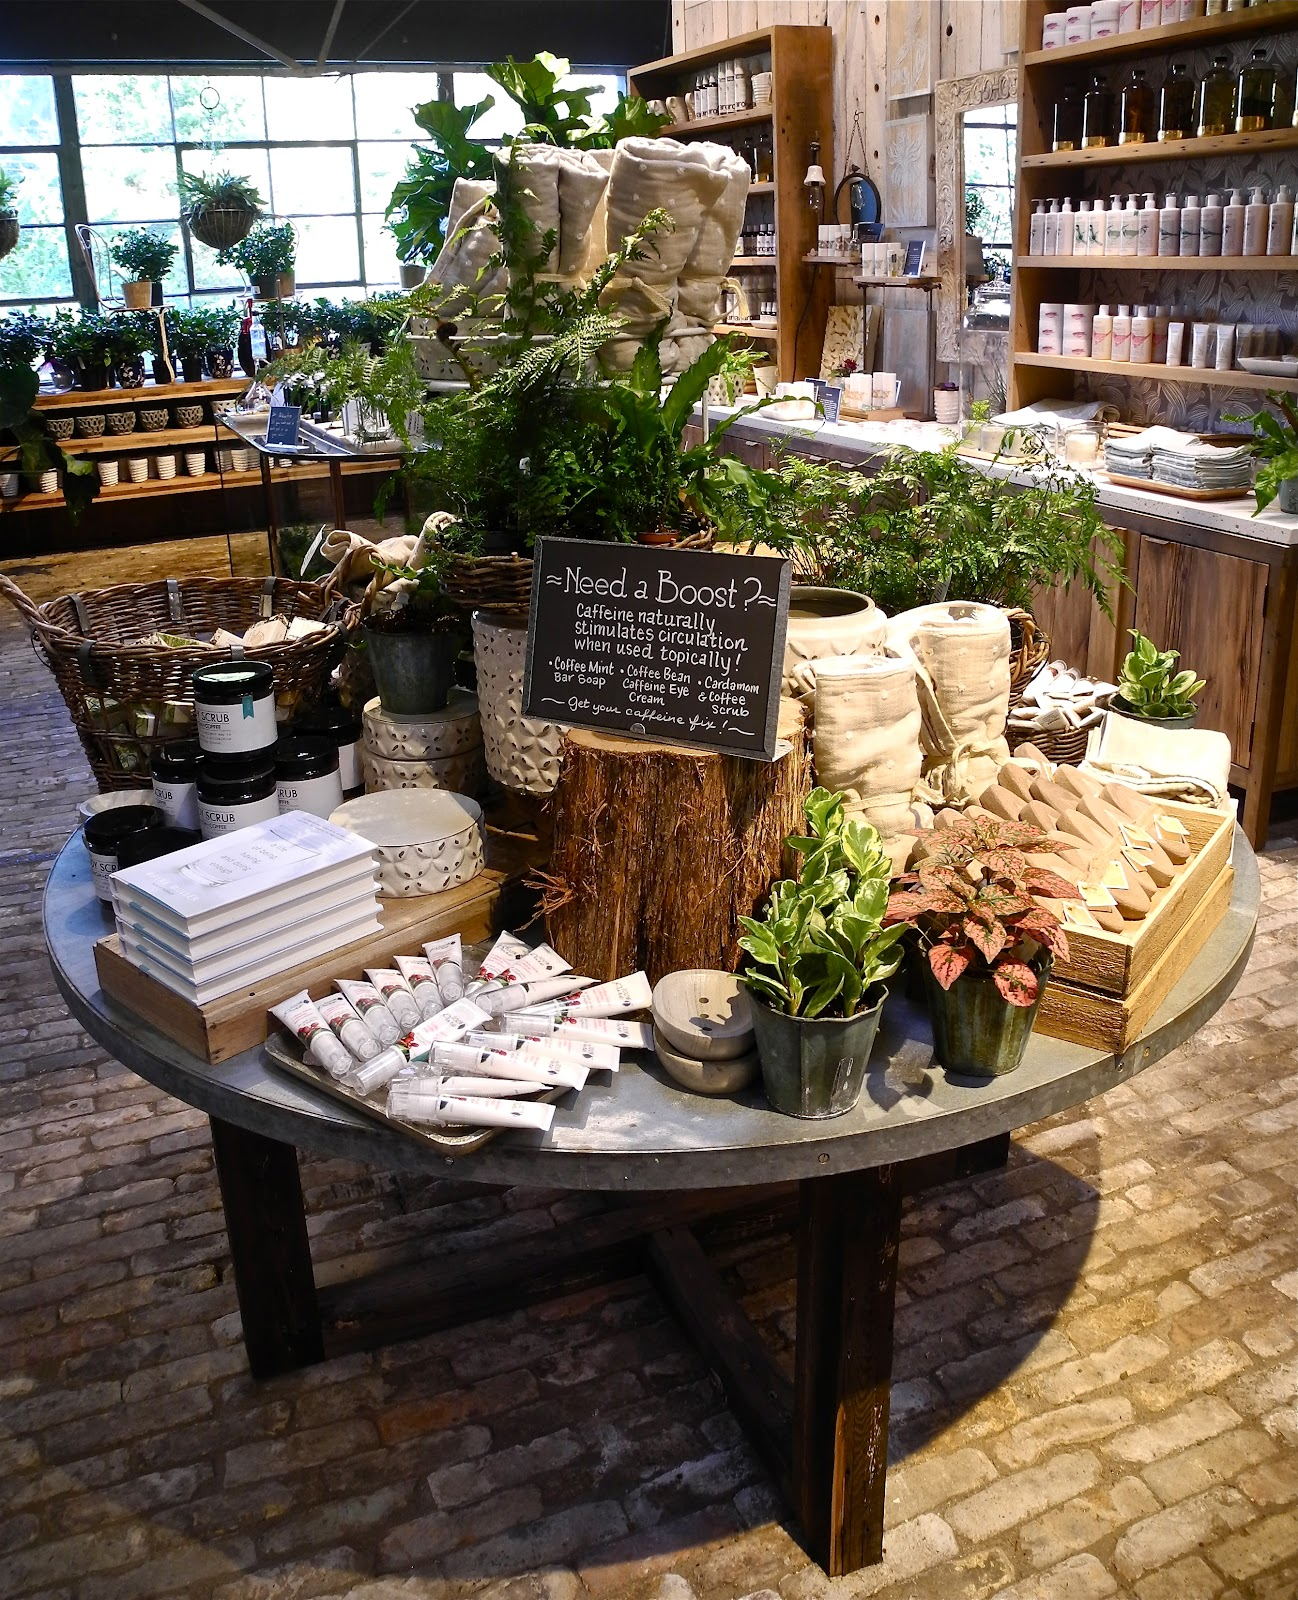 Paradis express terrain in westport - Garden decor stores ...